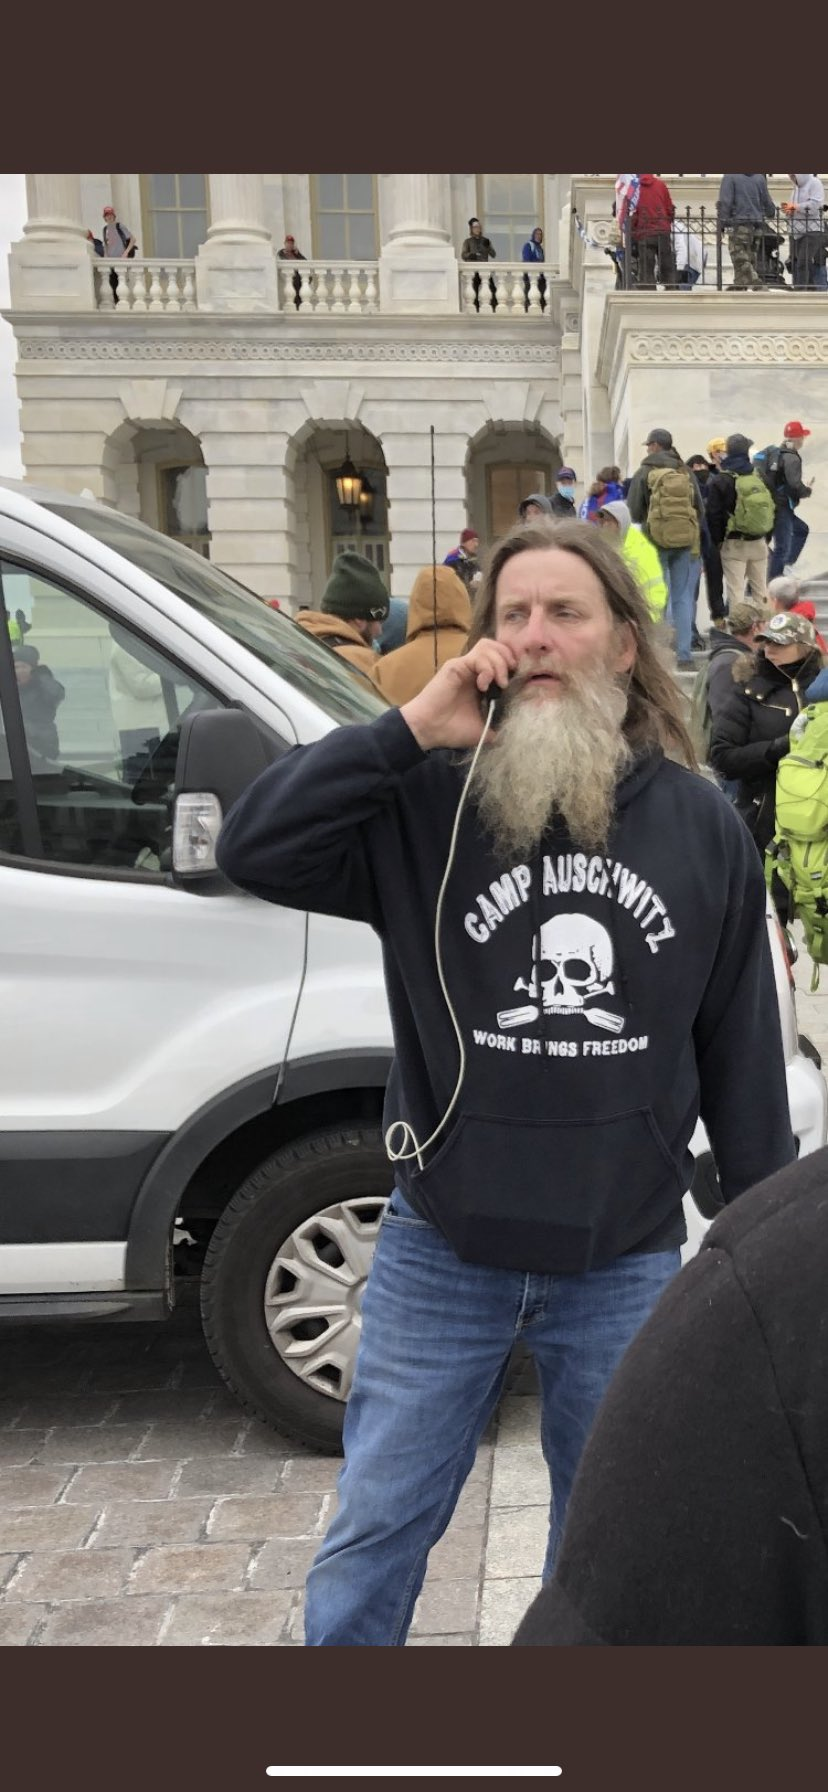 A picture of one of the Trump Supporters at the Capitol riot ErQnHcmXMAcDuO4?format=jpg&name=large